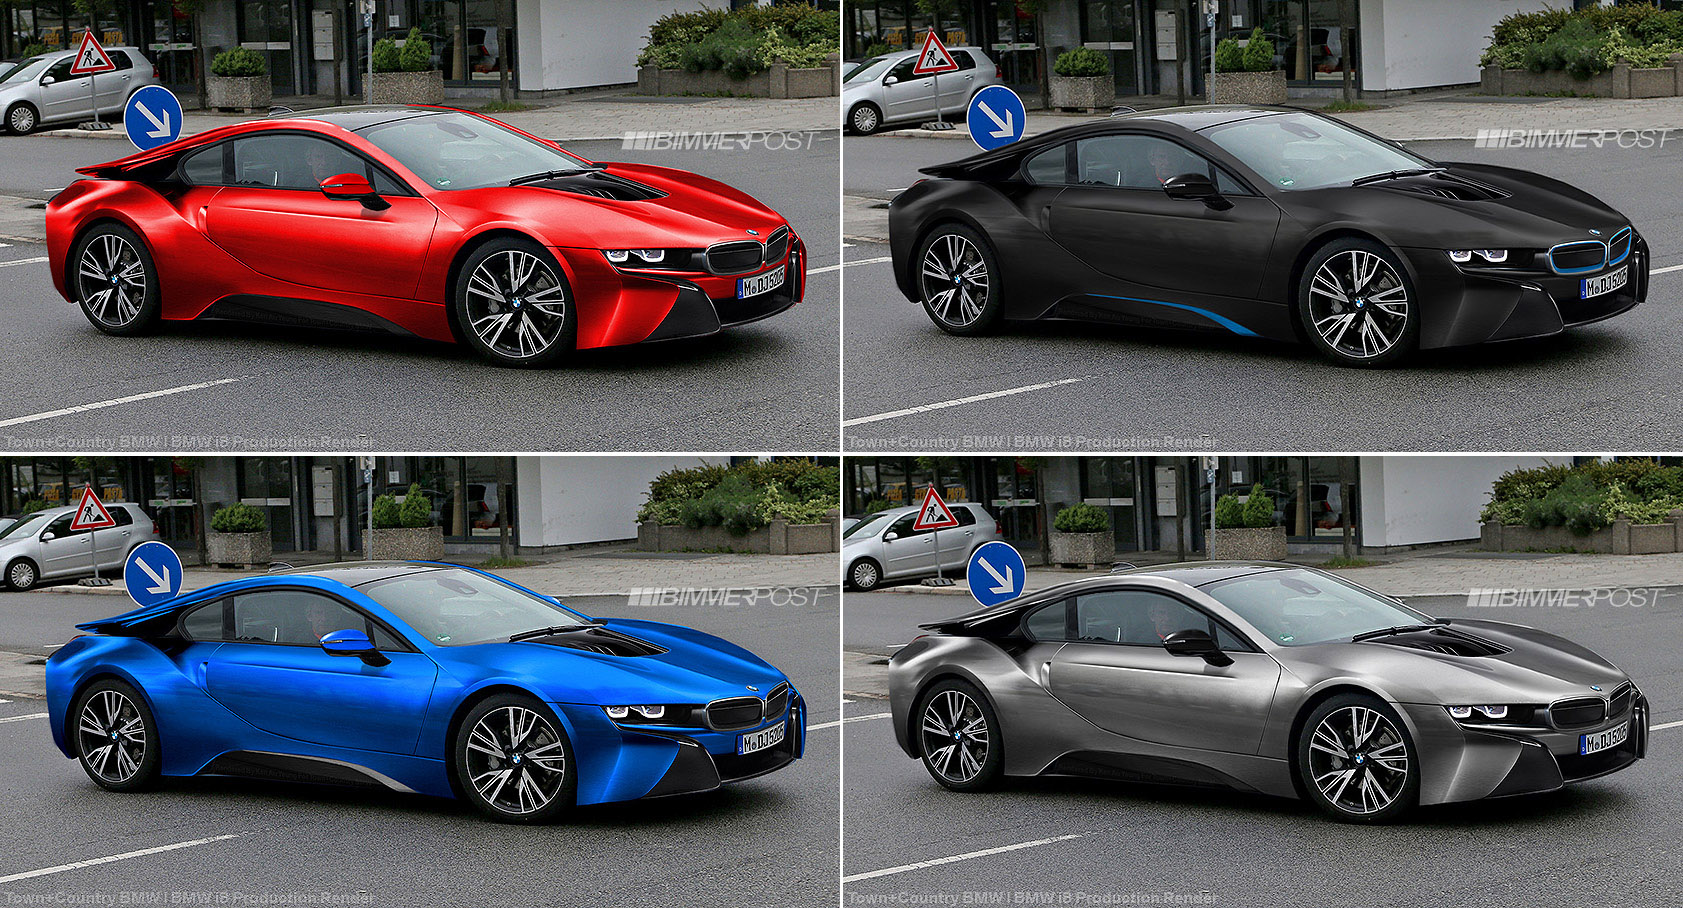 Bmw I8 Production Renders Based On Latest Spyshots Page 2